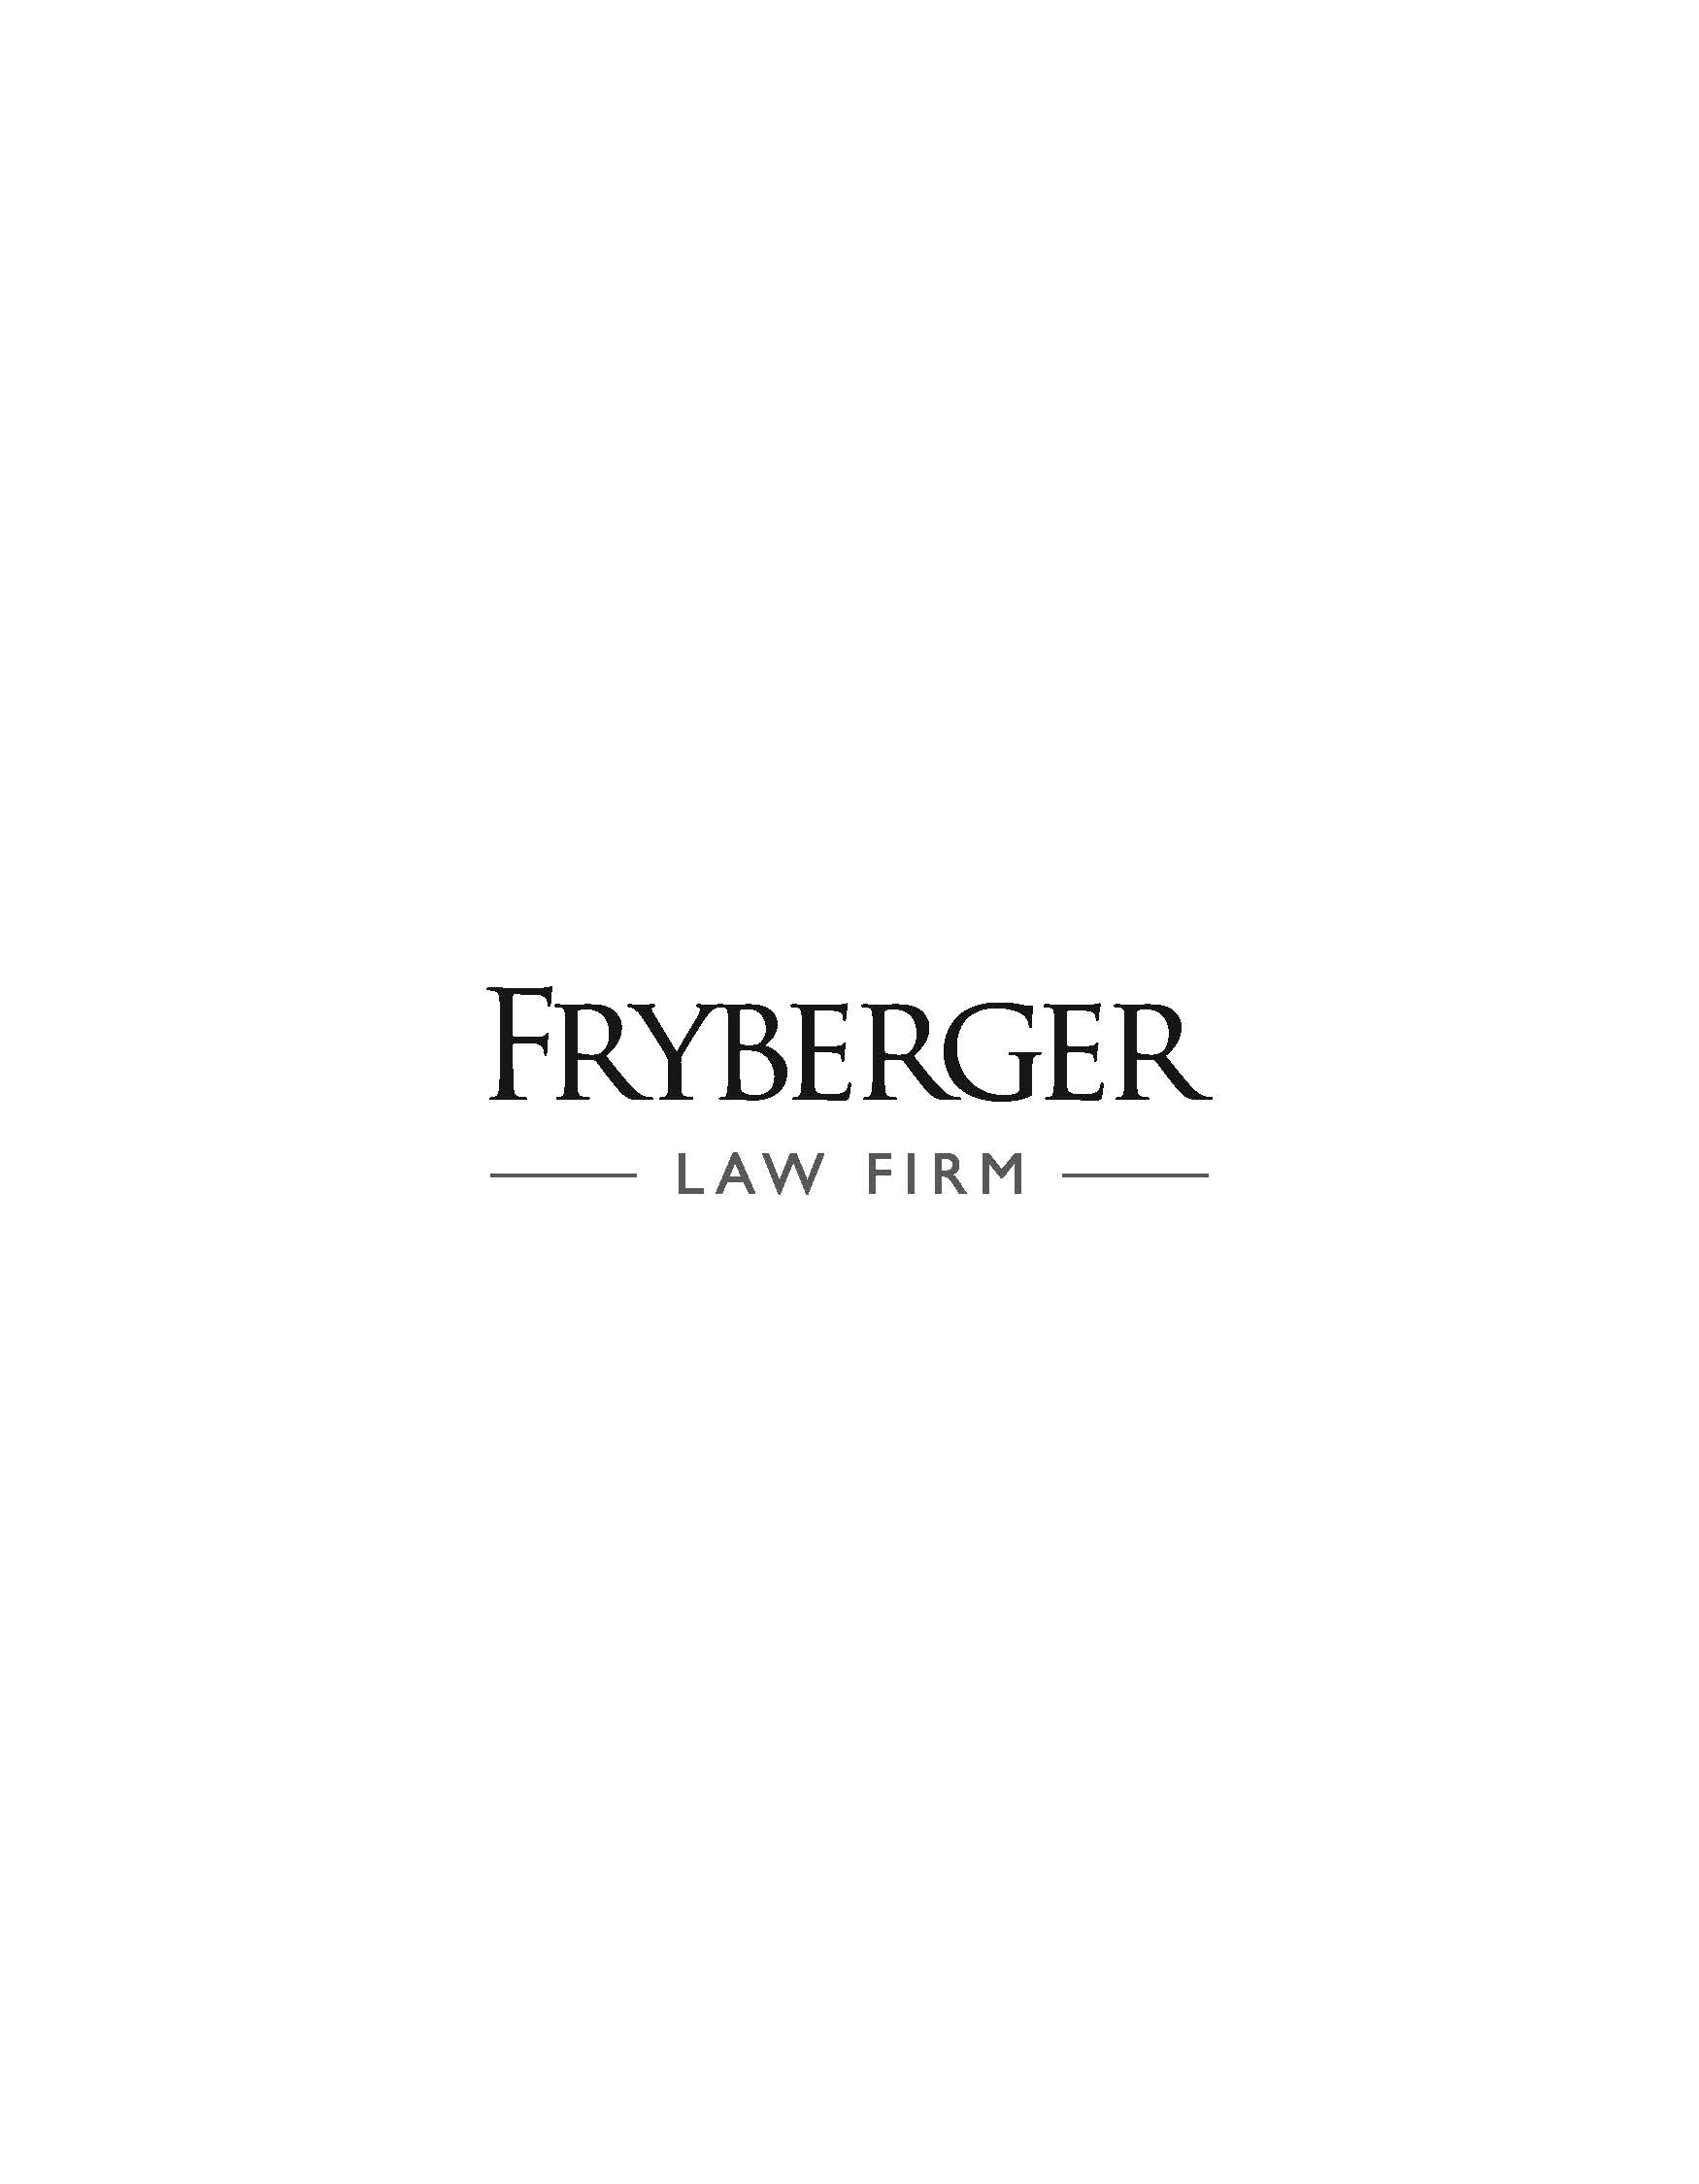 Fryberger Law Firm